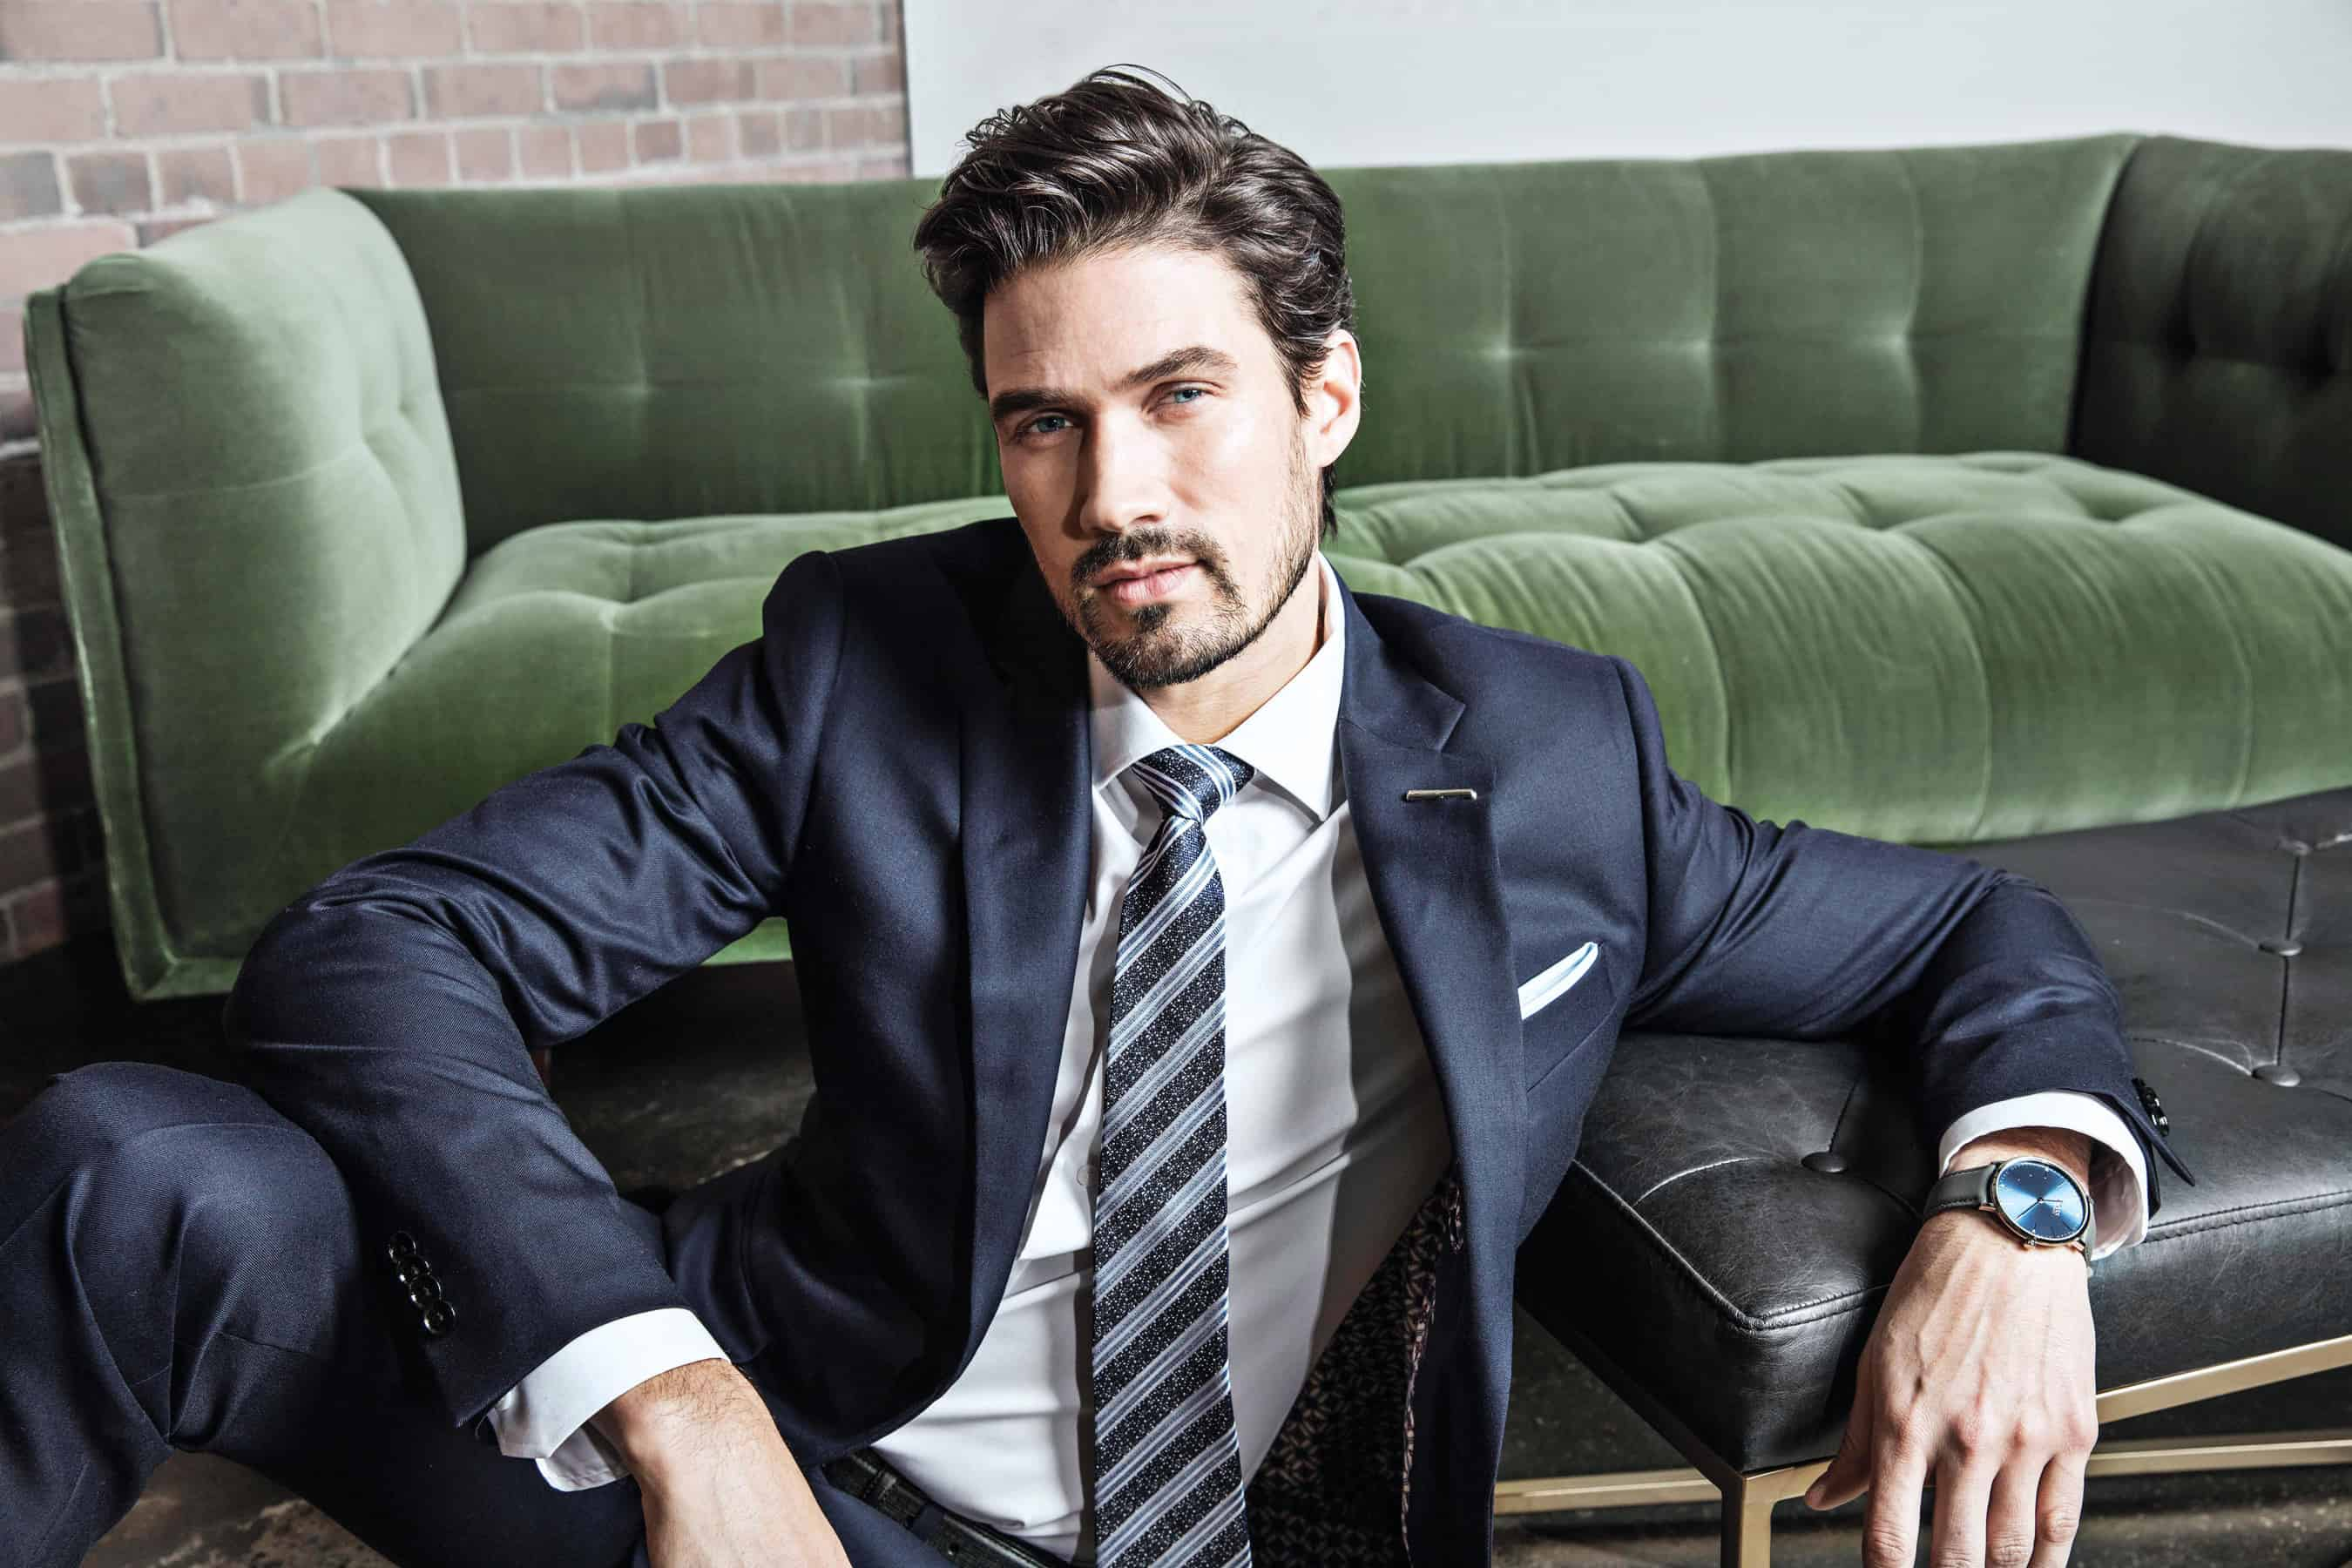 INDOCHINO DEBUTS THREE NEW LINES IN ORDER TO STREAMLINE BUSINESS